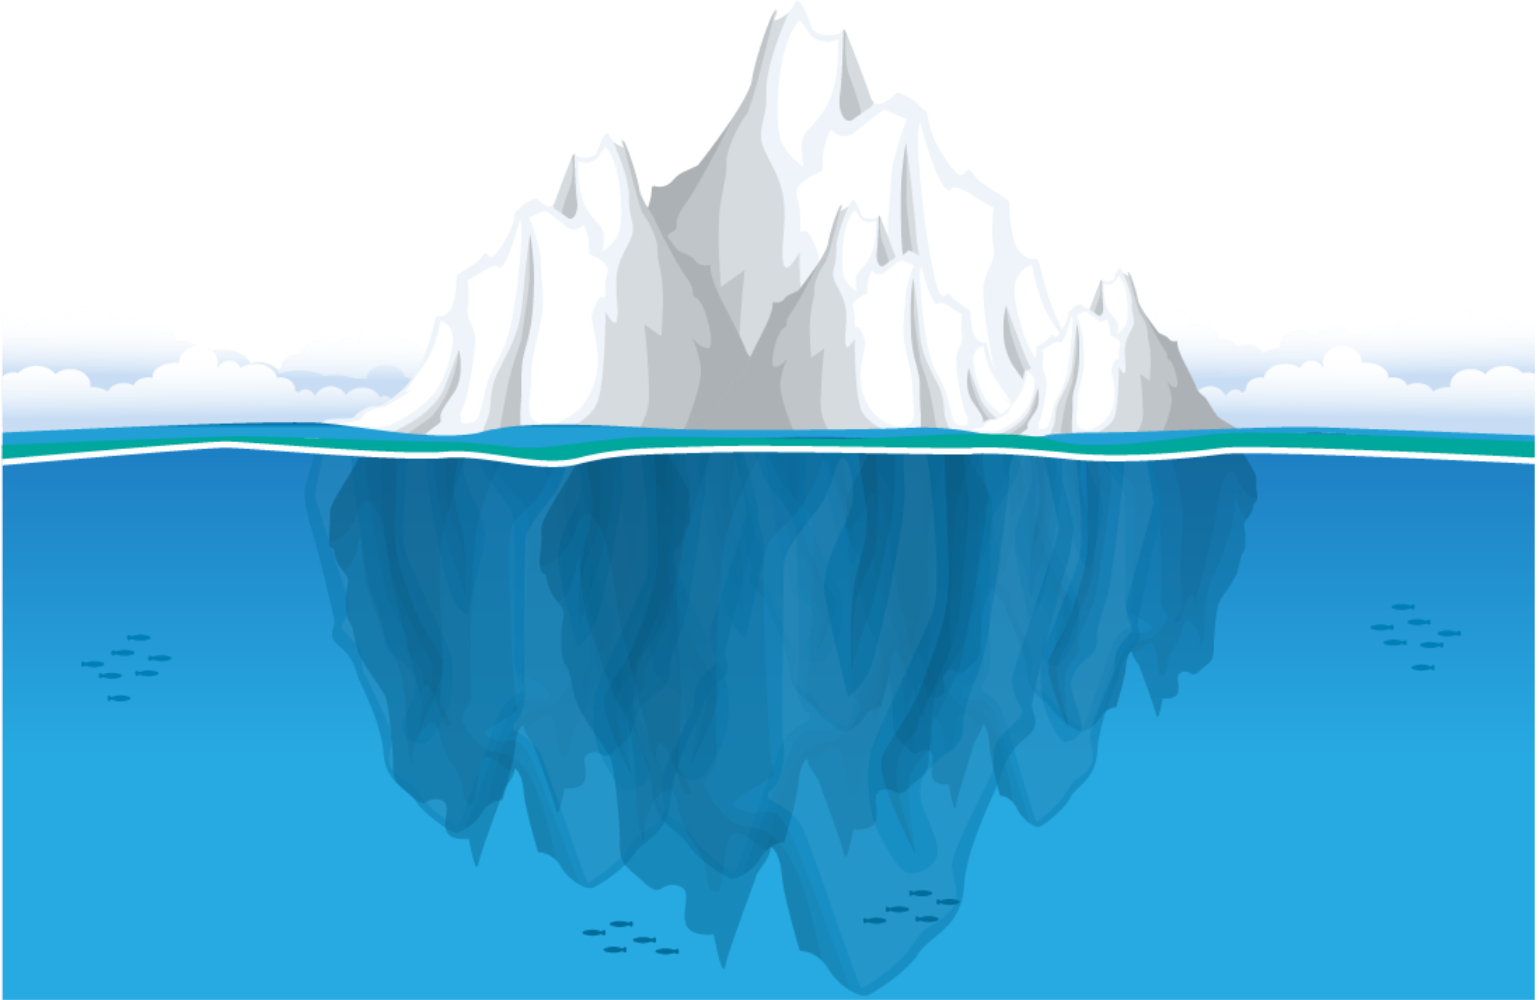 Clipart wave seawater, Clipart wave seawater Transparent ...